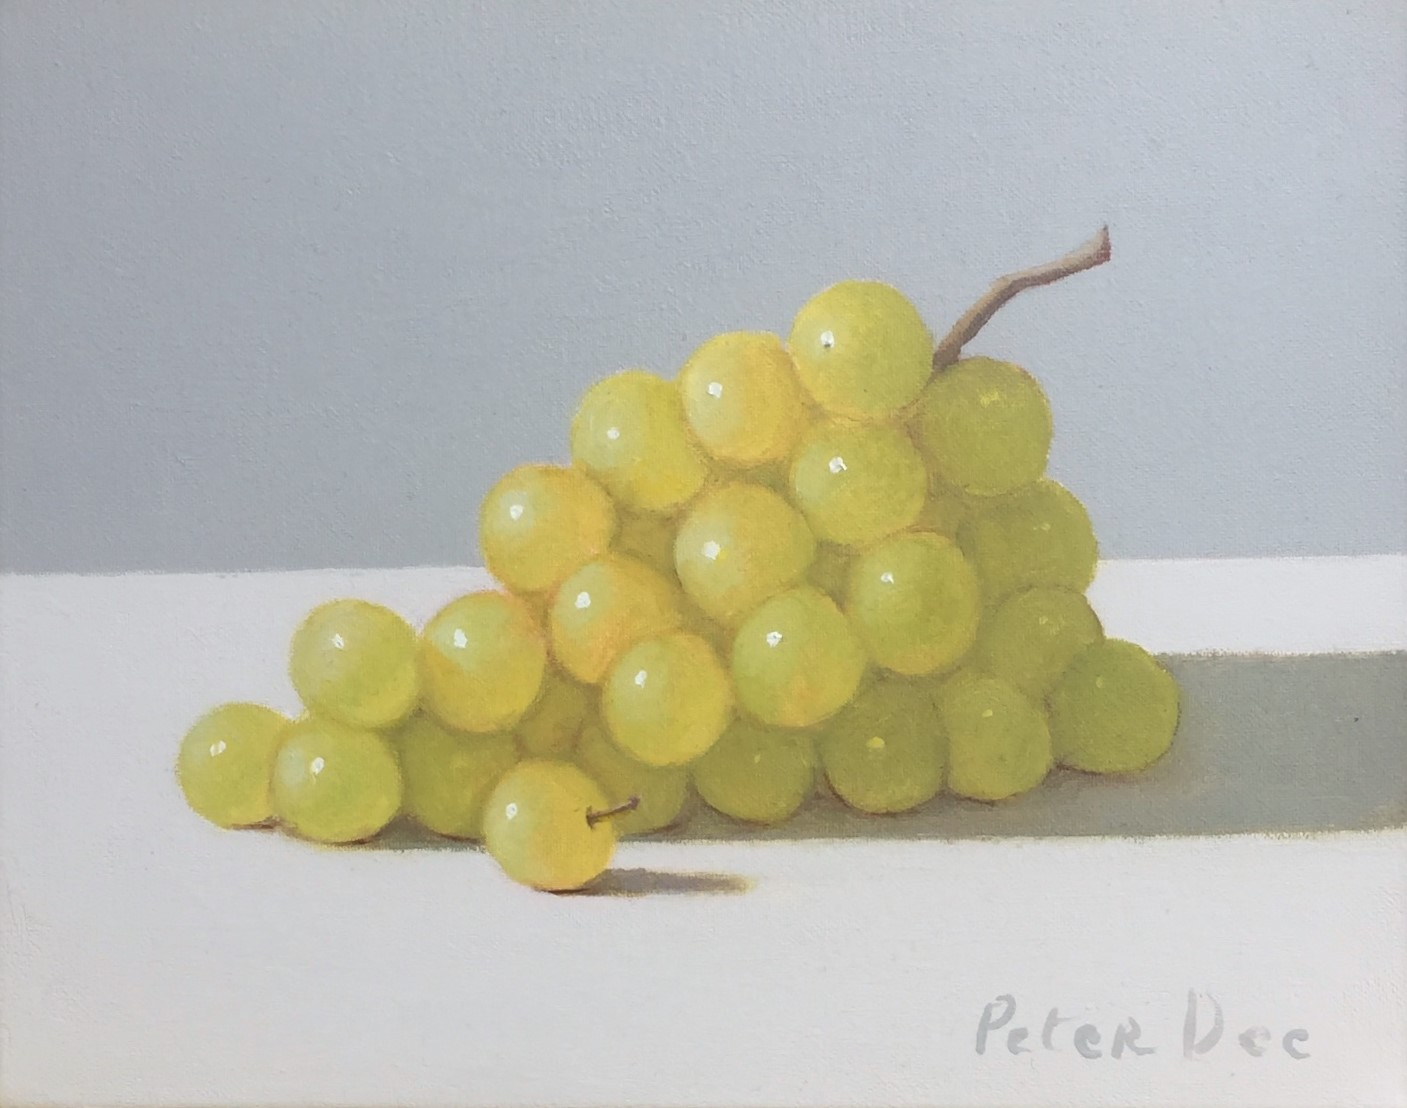 Green Grapes by Peter Dee